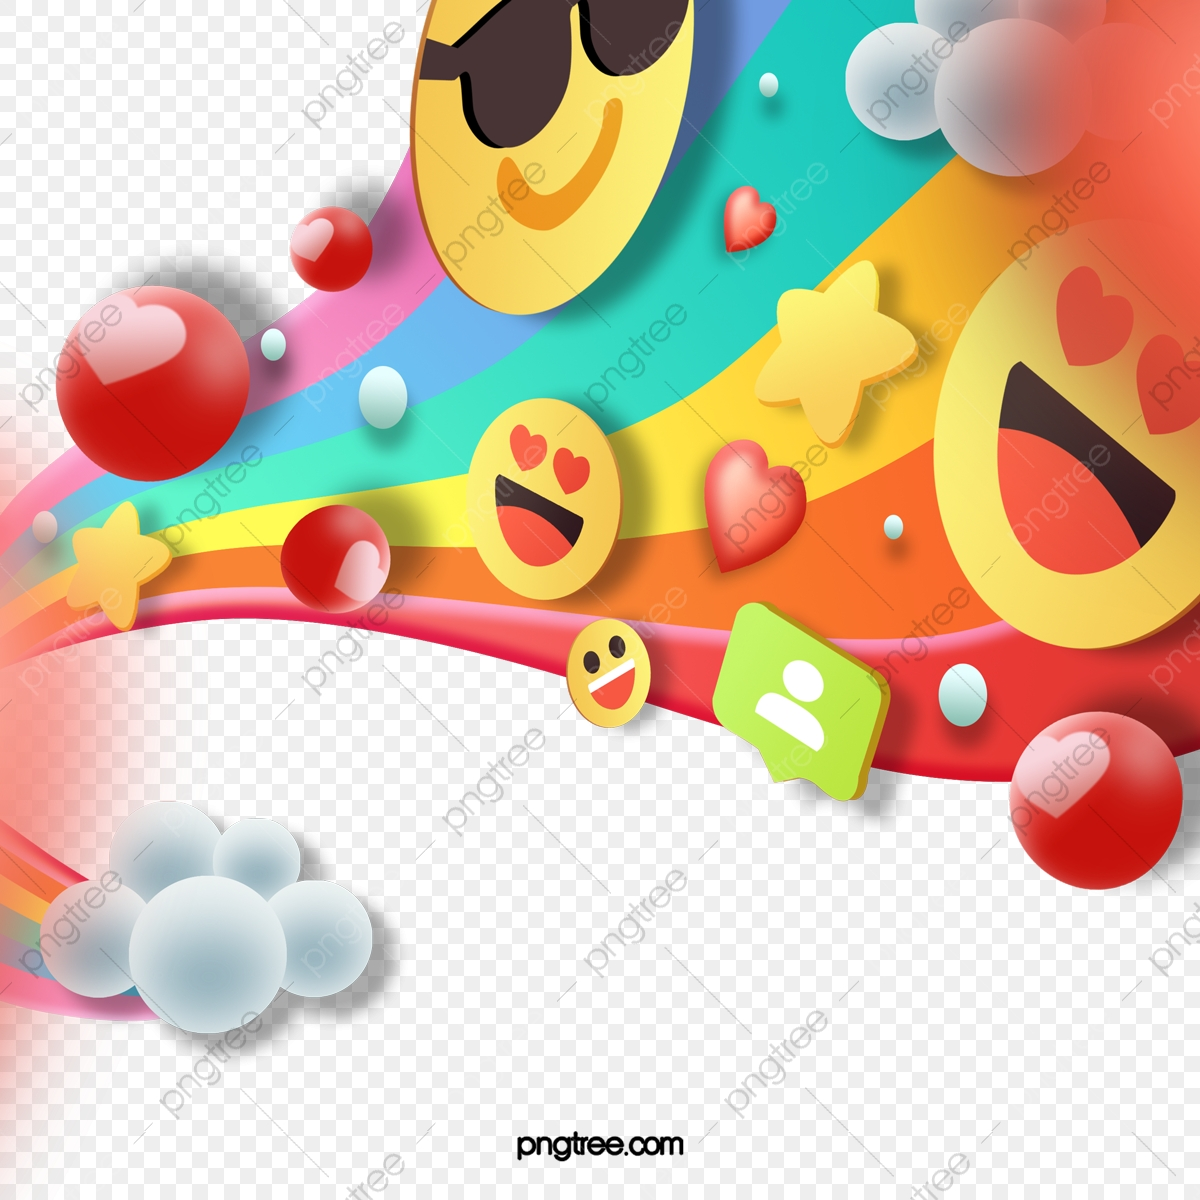 Creative Texture Cute Wind Emoji Tags Float Ball Dynamic Png Transparent Clipart Image And Psd File For Free Download Wind face emoji can mean the wind is blowing really strongly outside!. pngtree